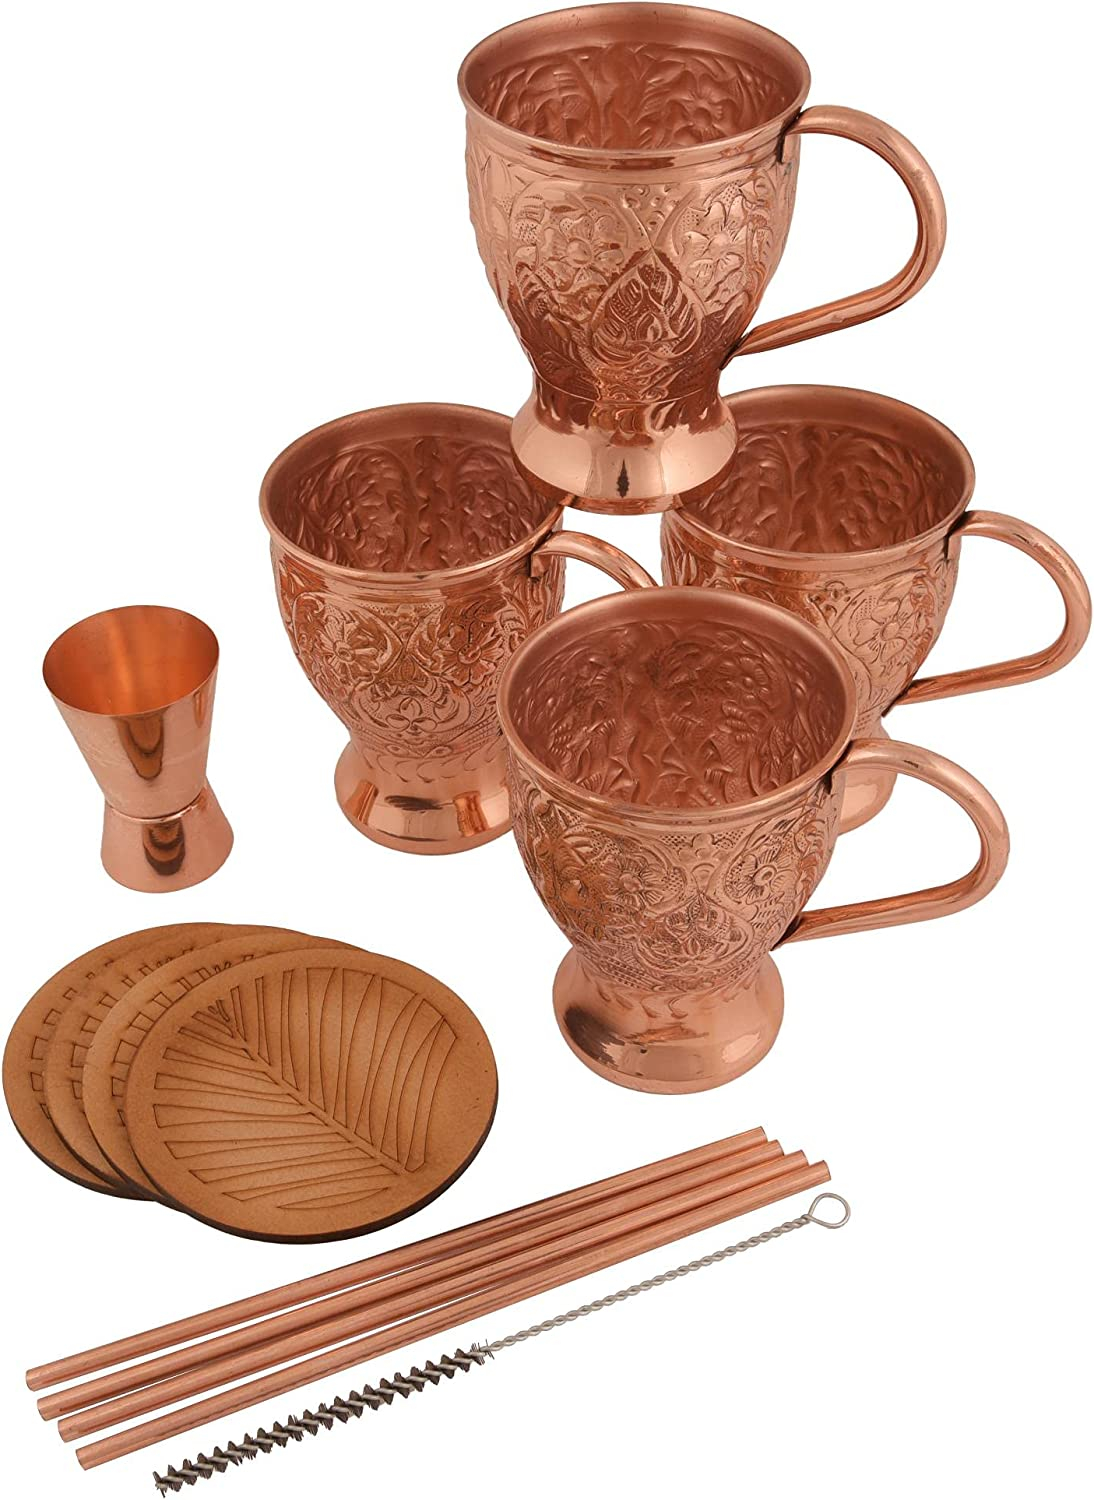 100% Moscow Mule Copper Mugs - Set 4 Ha Max 59% Inventory cleanup selling sale OFF of Pure Handmade Solid